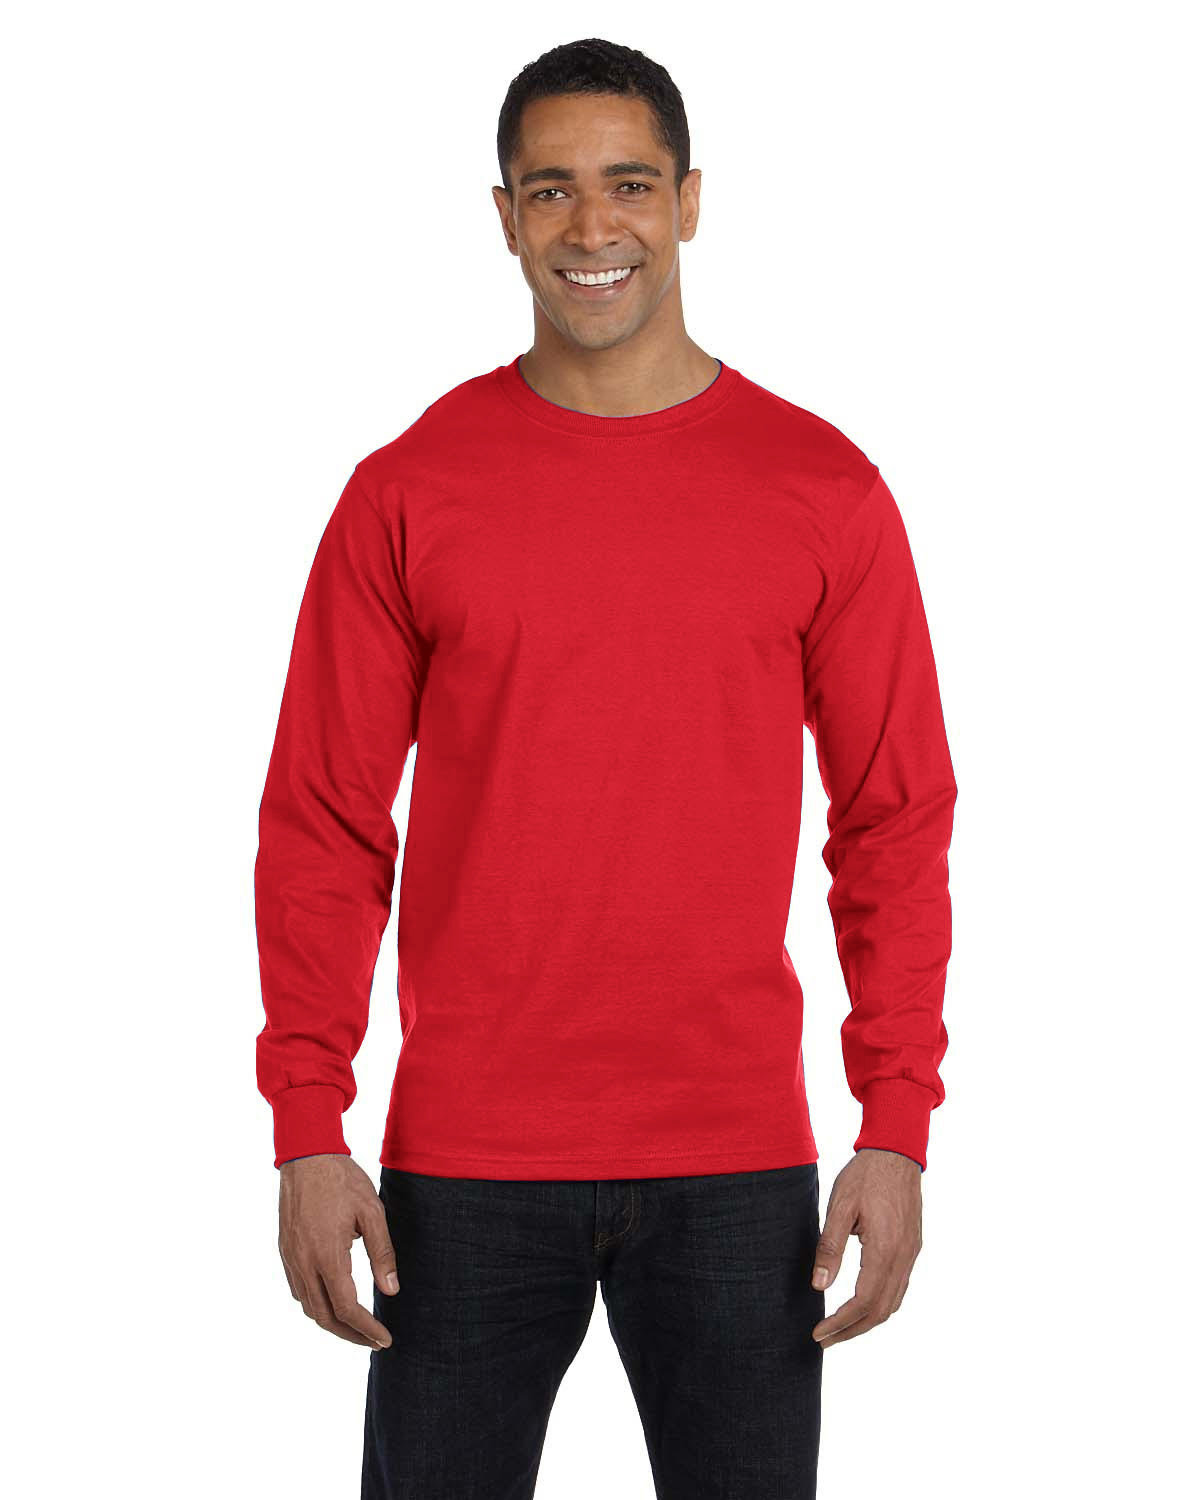 Hanes Men's ComfortSoft® Cotton Long-Sleeve T-Shirt ATHLETIC RED